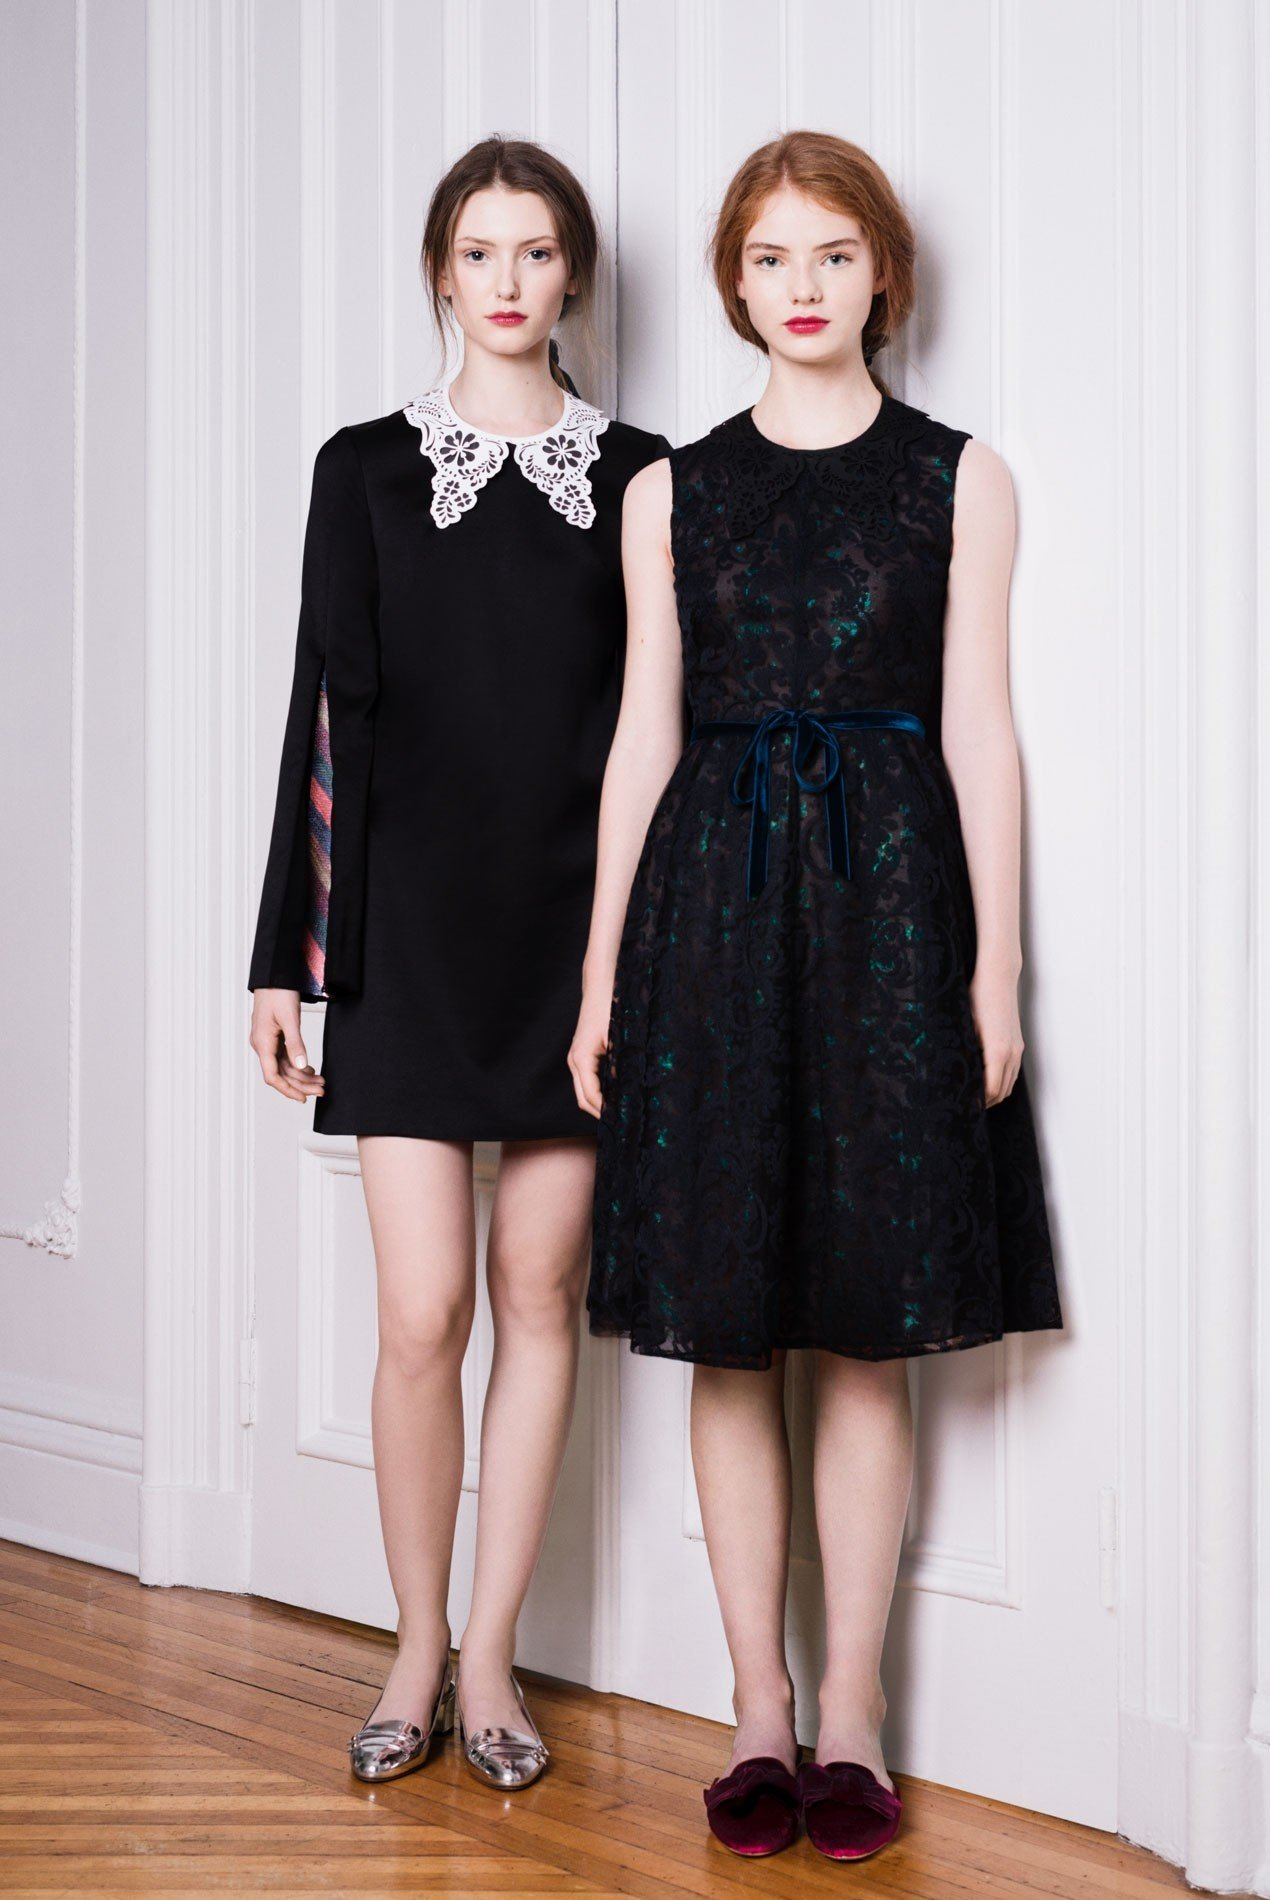 Left: Cady sheath dress with chevron sequin inserts and laser cut collar | Right: Ironwork embroidered dress over iridescent lace with laser cut collar